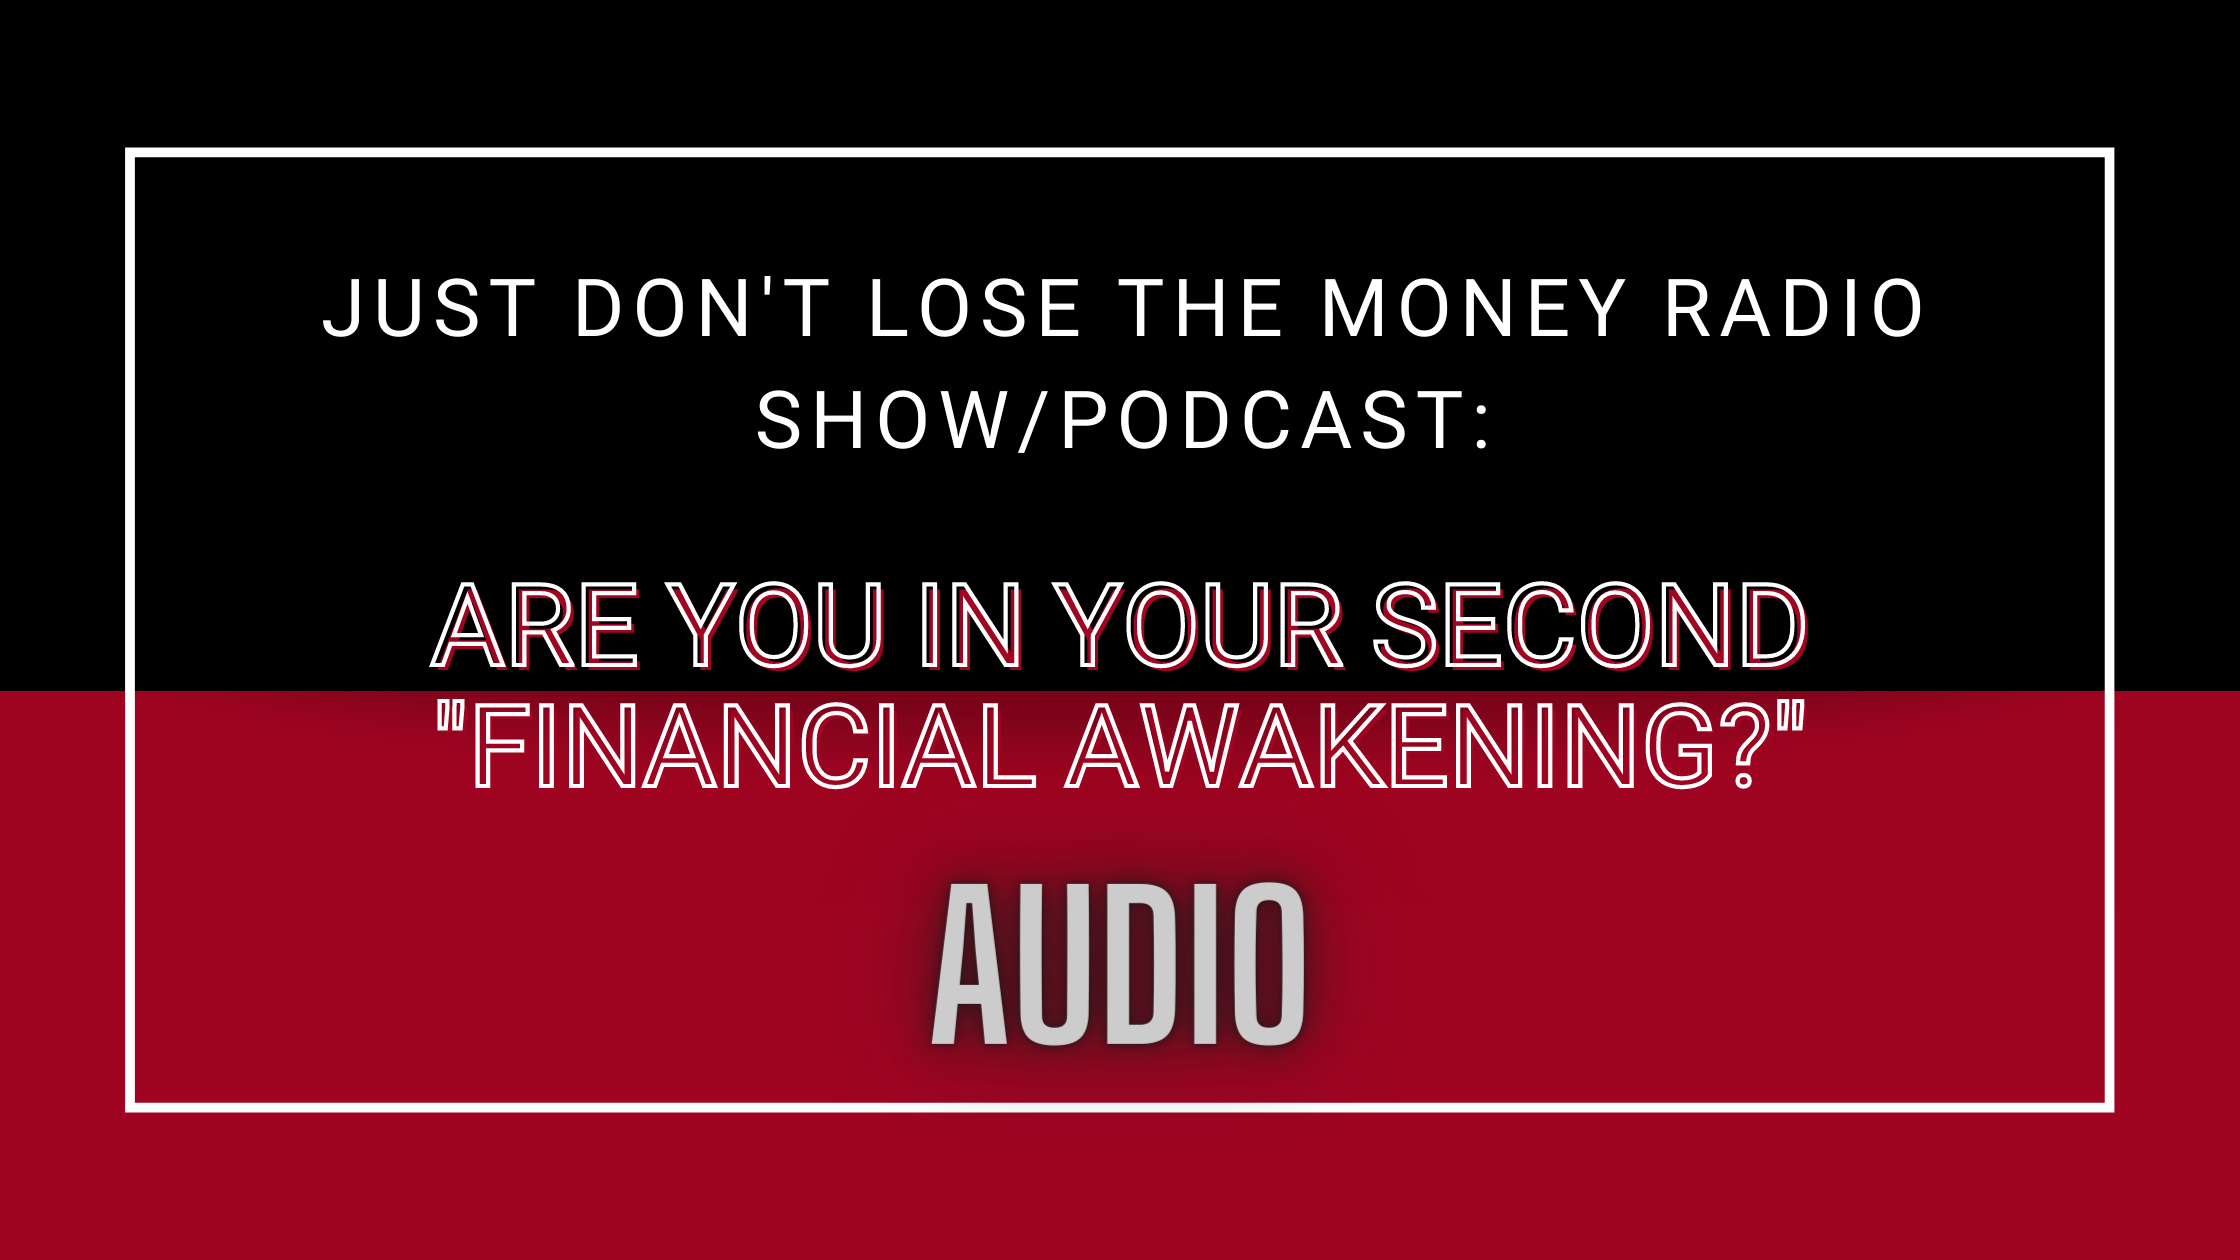 JDLTM: Are You In Your Second Financial Awakening?